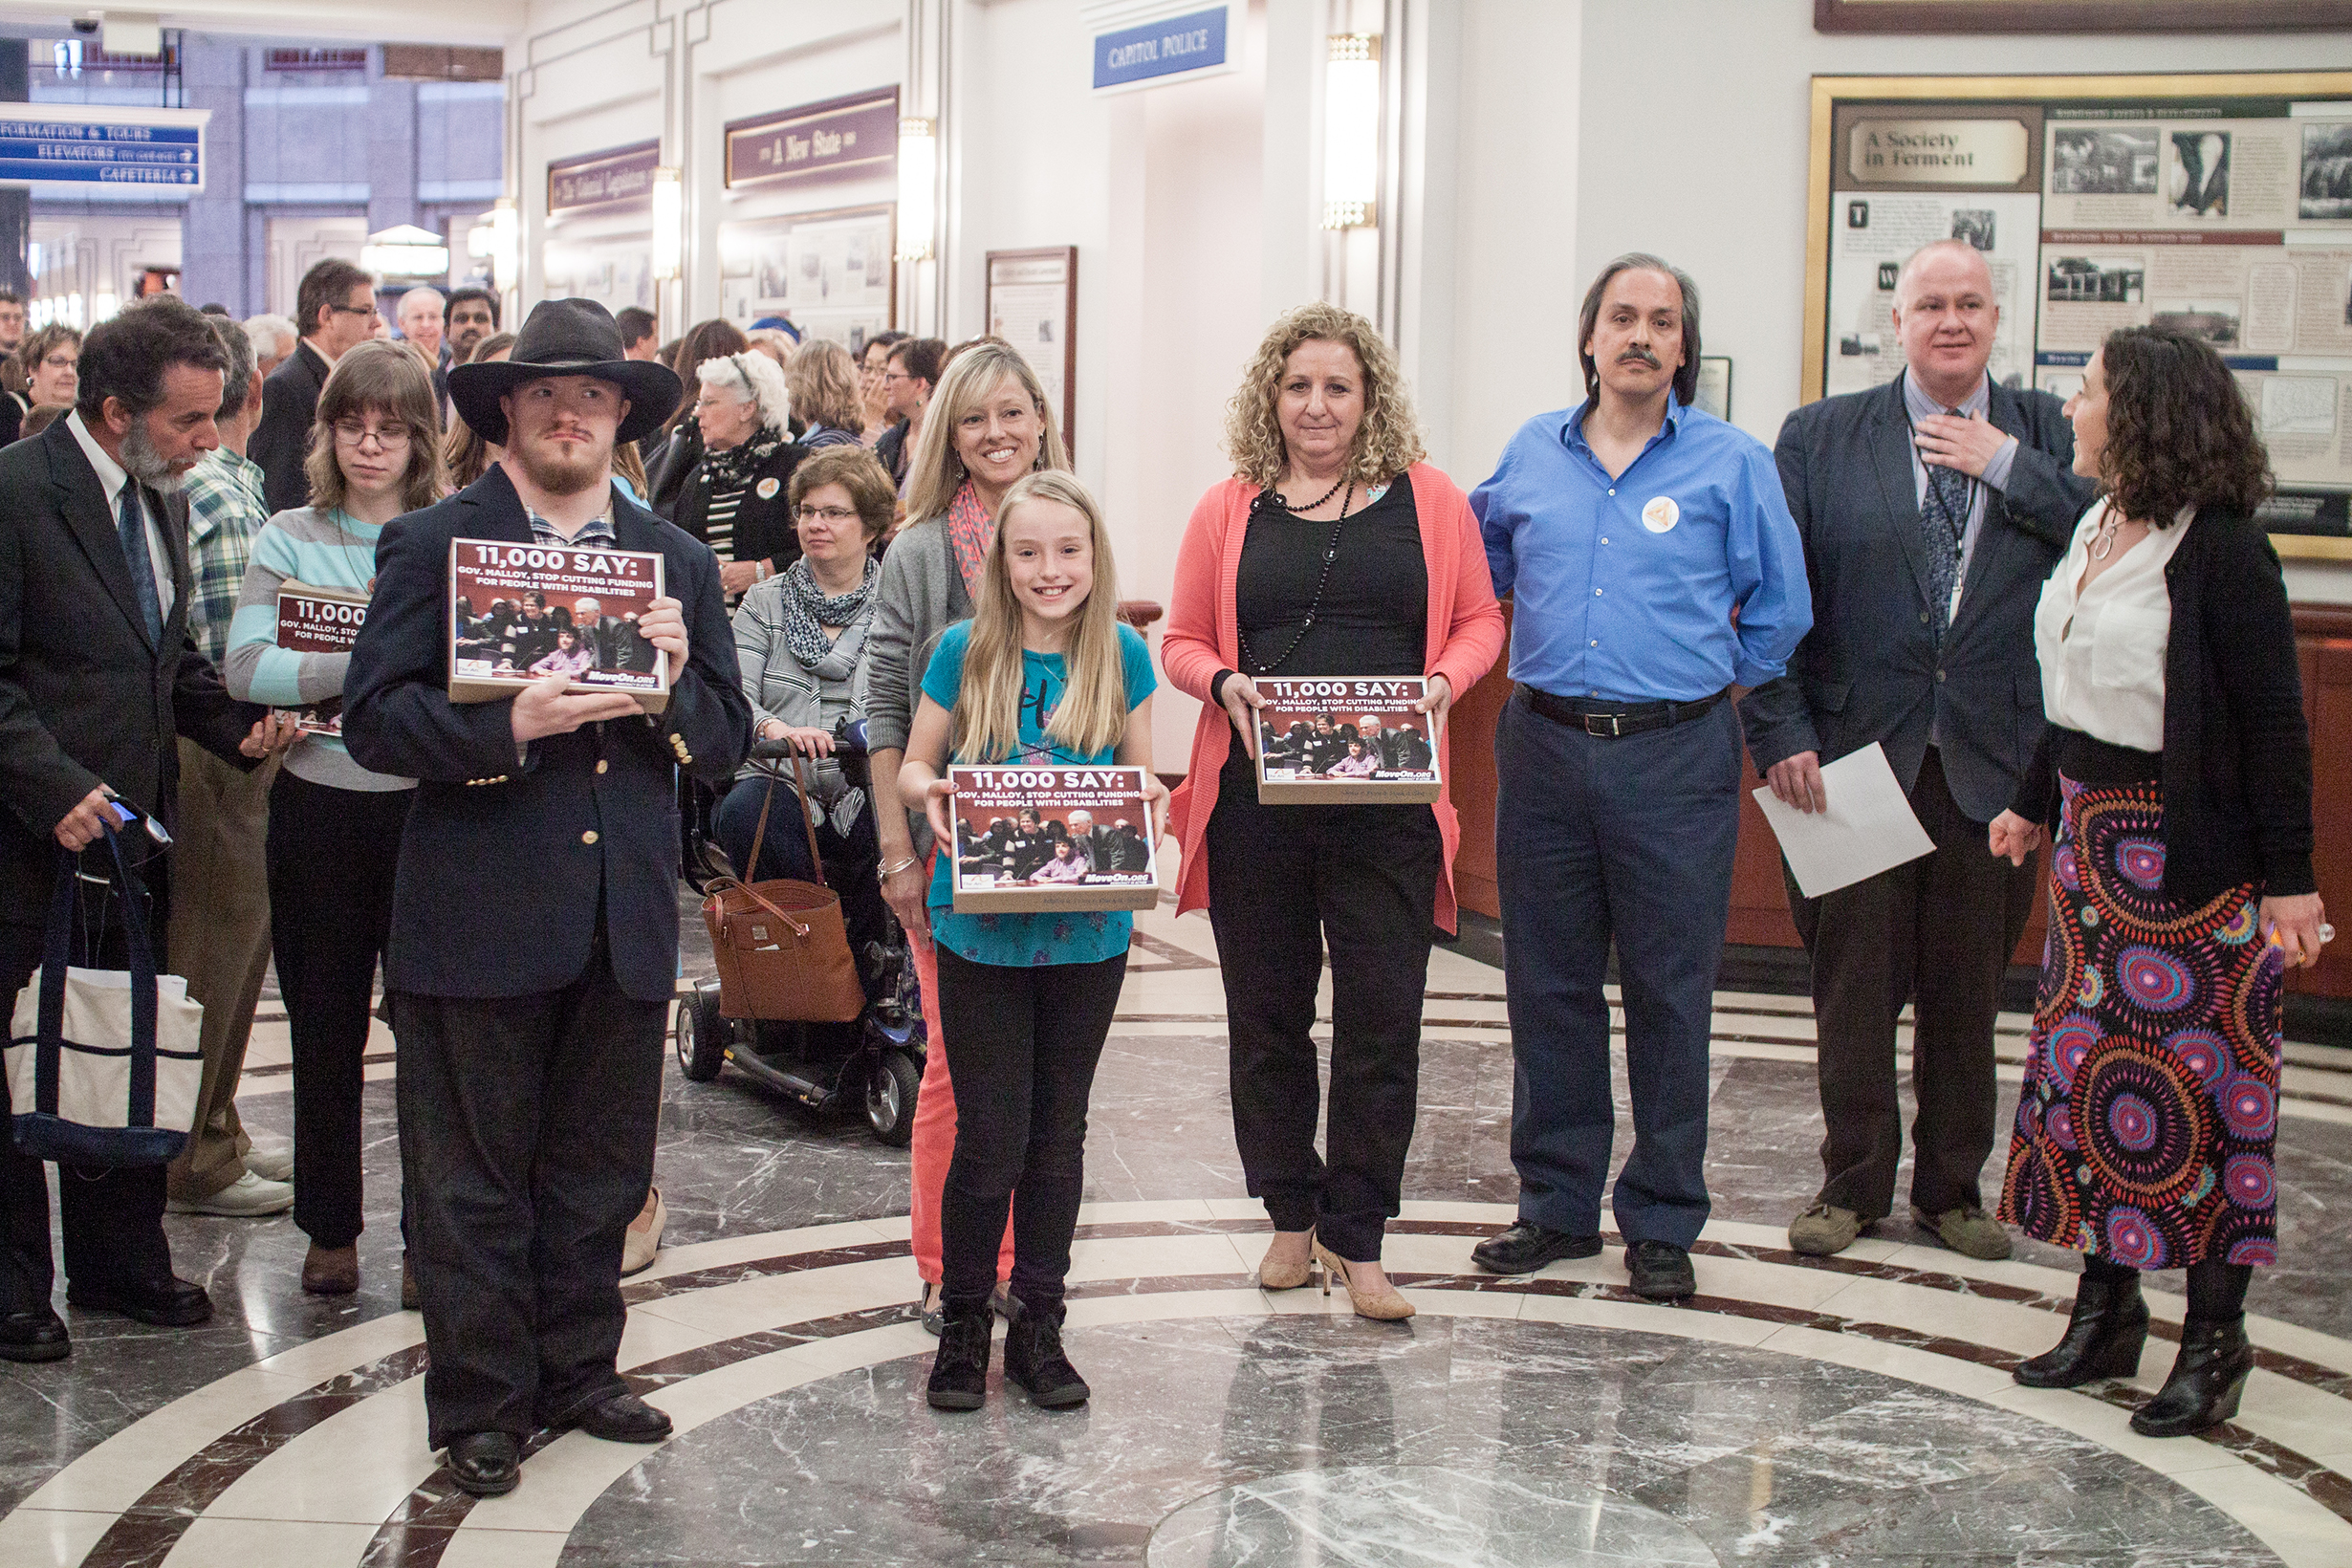 4.22.15 Press Conference and Petition March-59.JPG